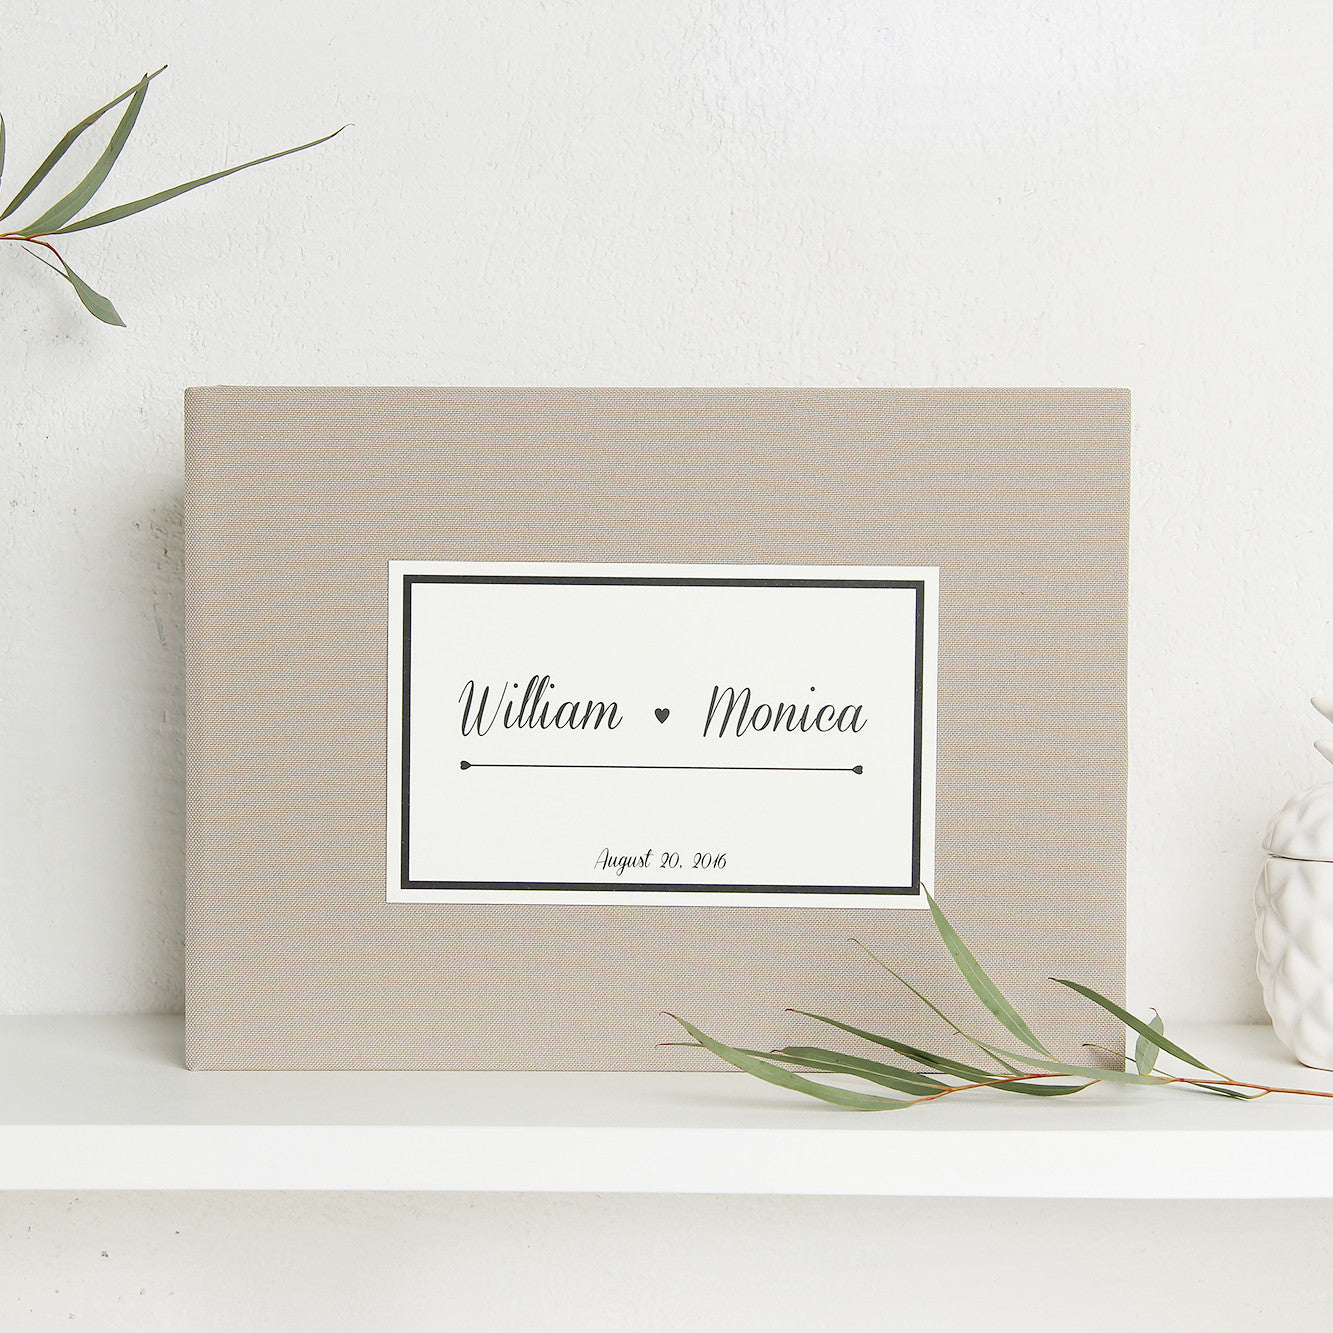 Instant Guest Book Sign in Book Album Late with Paper Label - Liumy